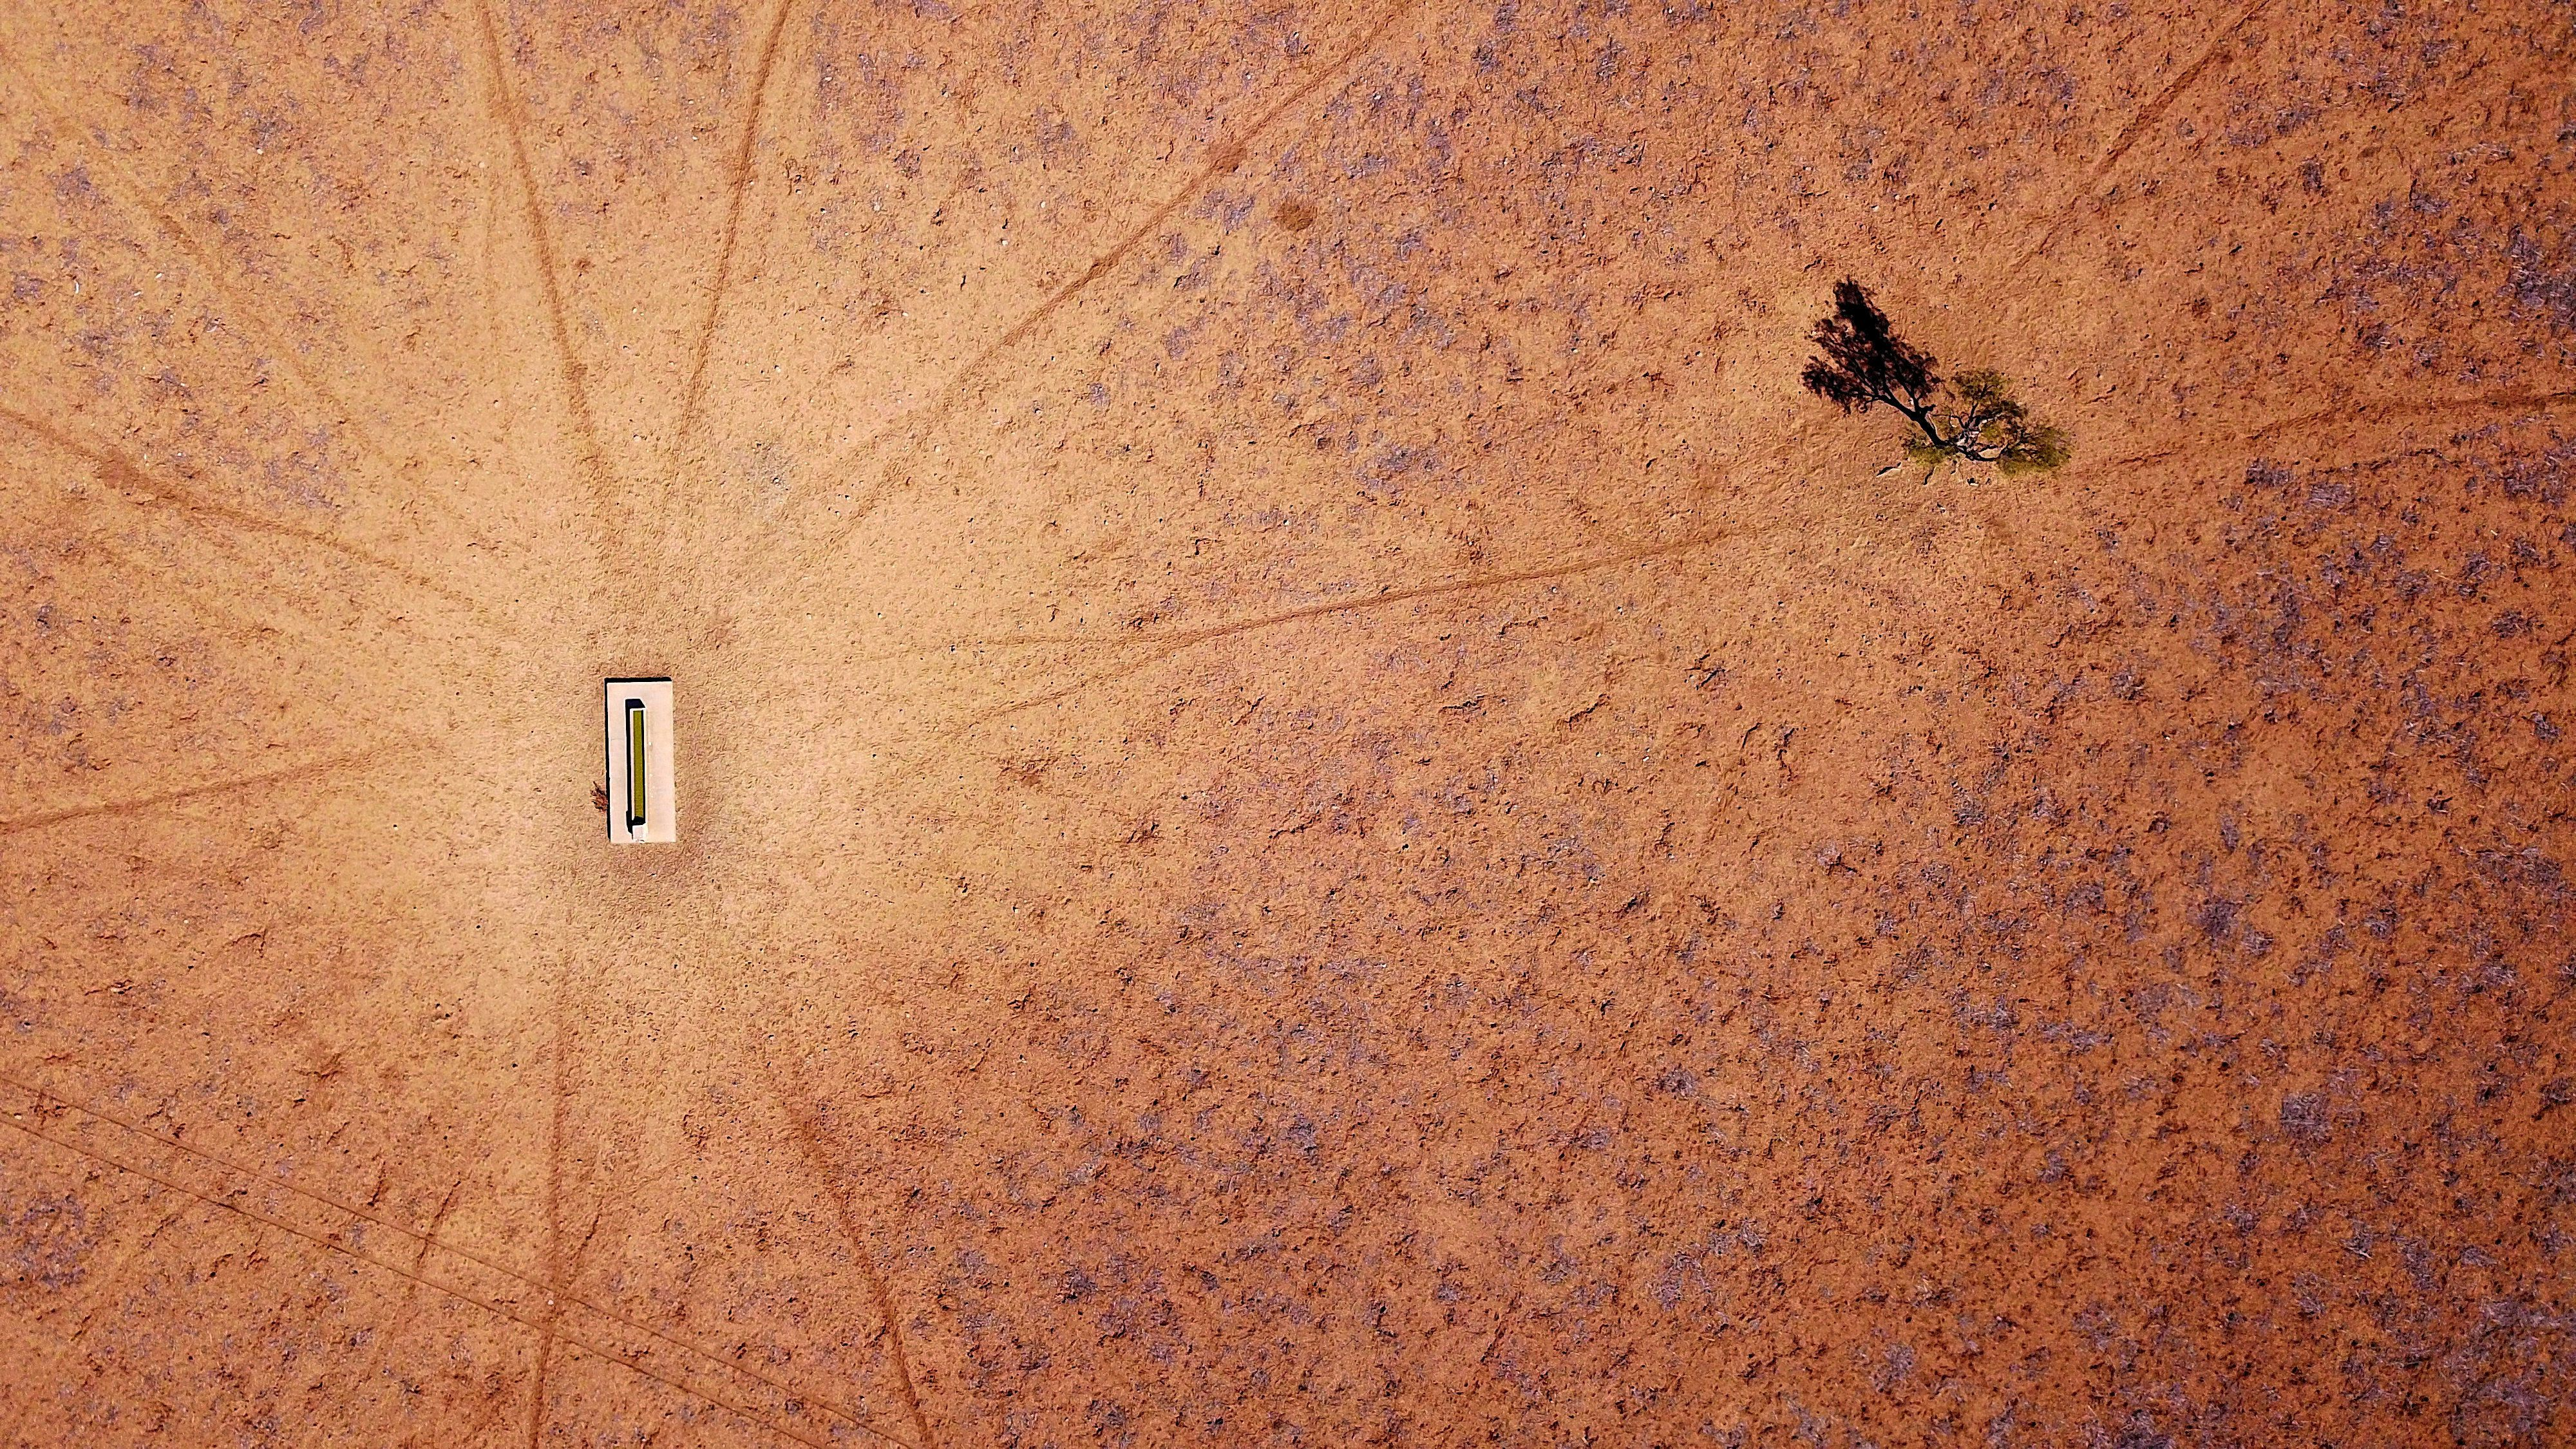 Devastating Pictures Show Impact Of Drought Across Entire Australian